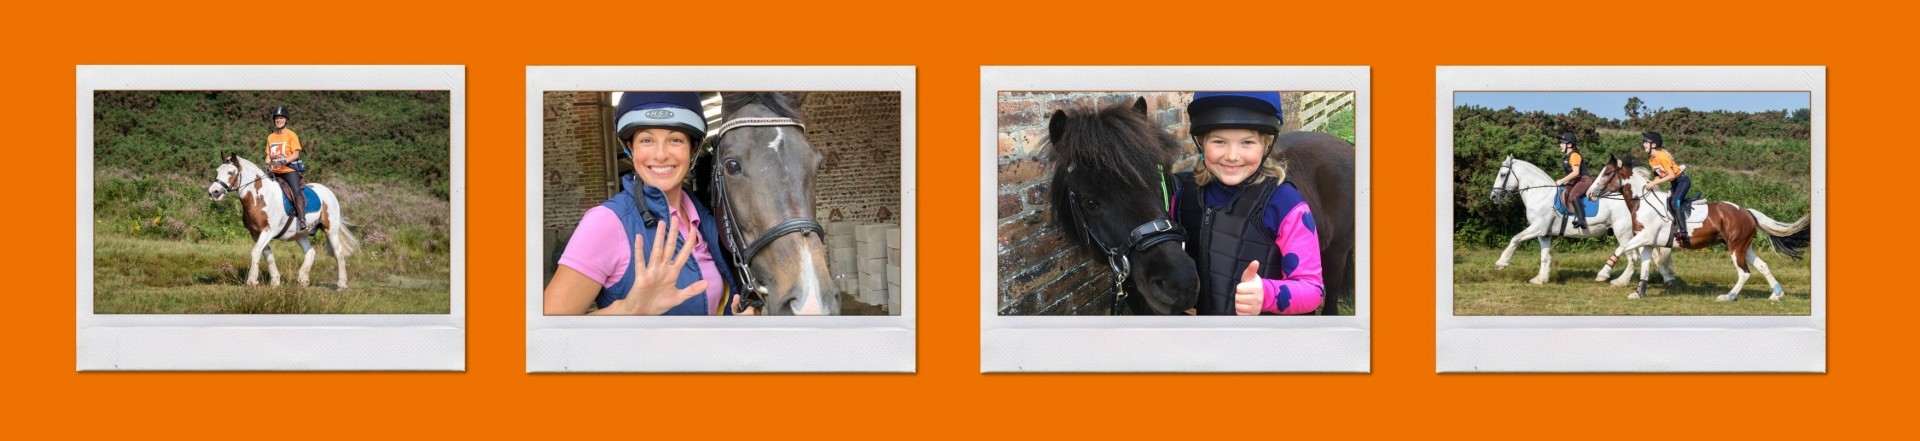 collage with three photos of horse riders